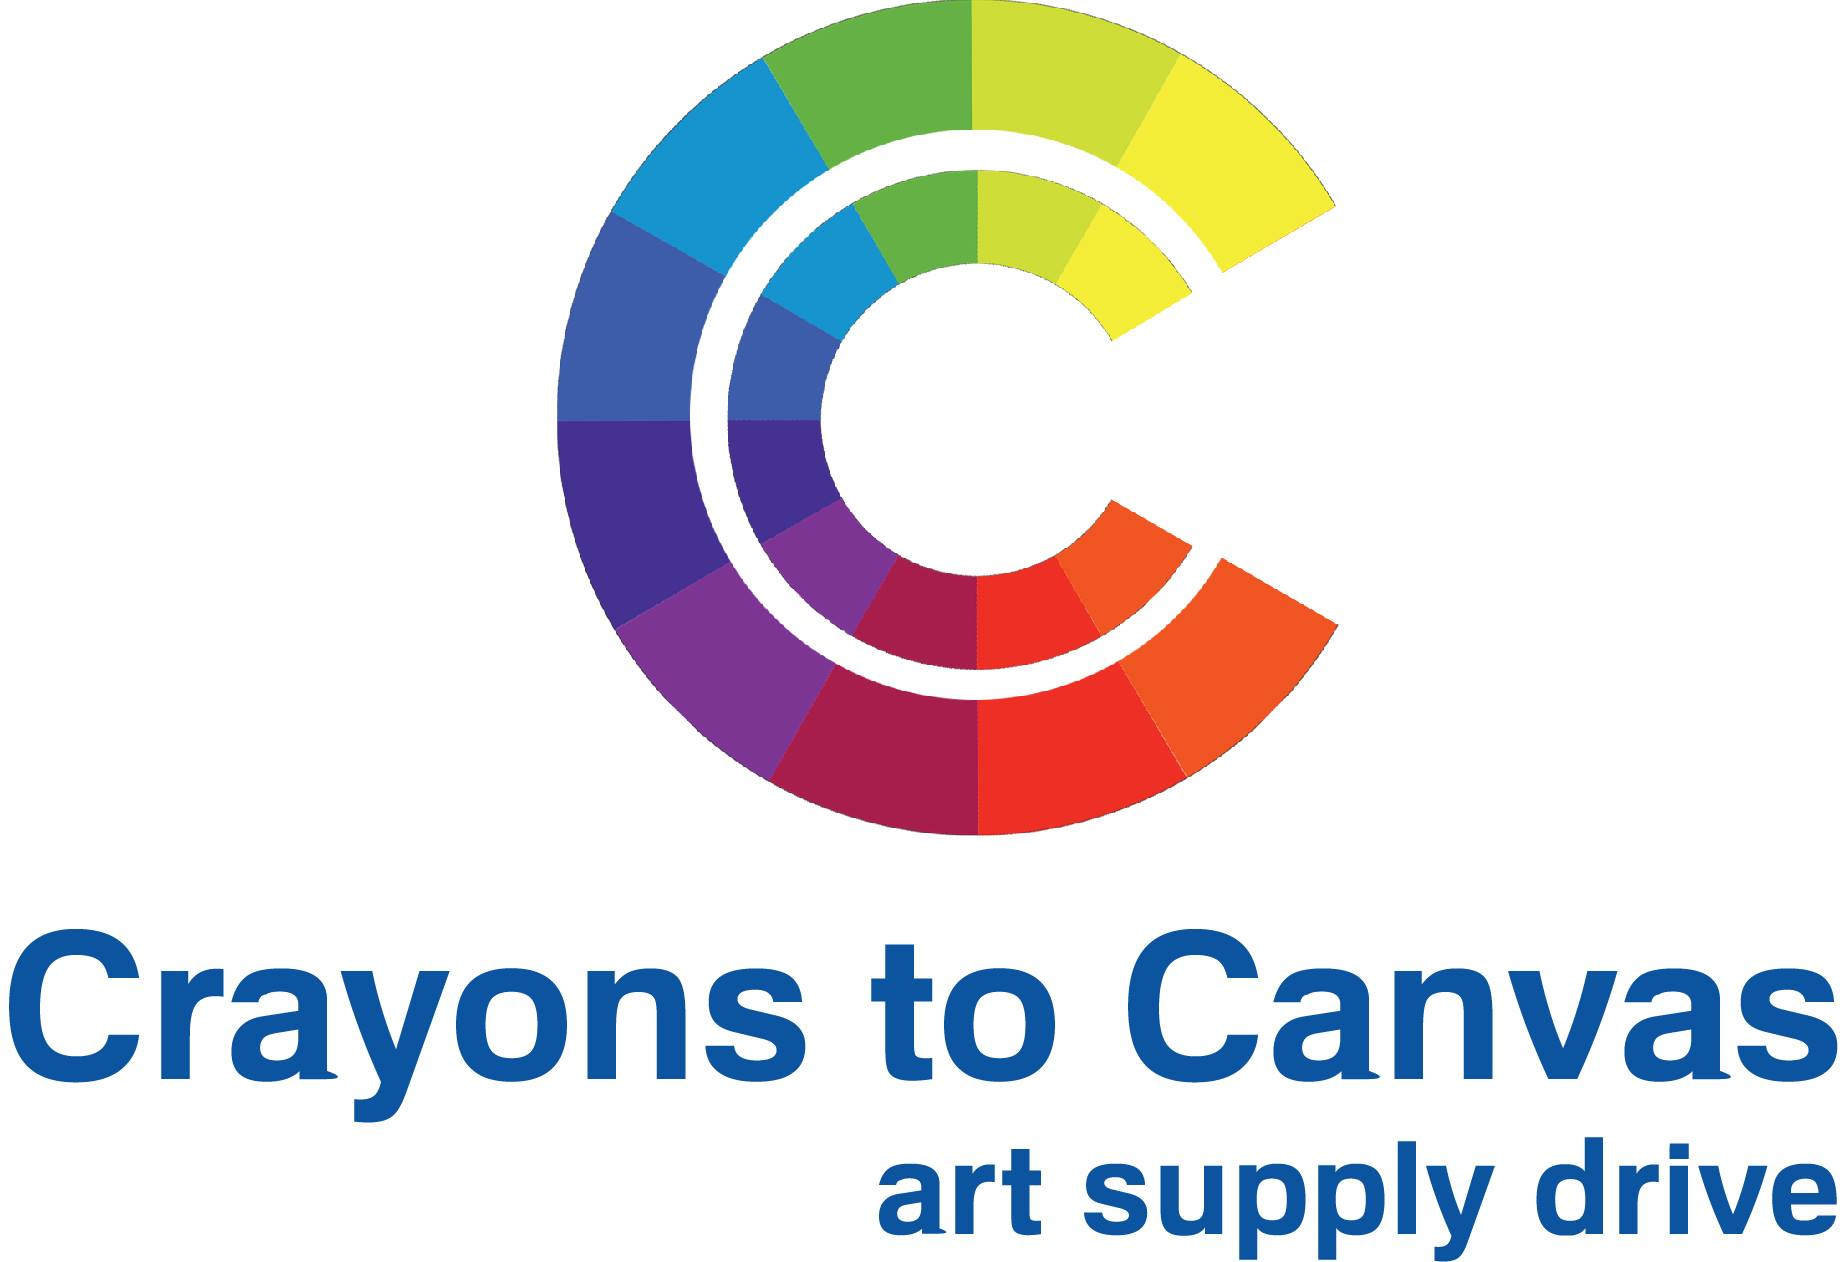 Crayons to Canvas